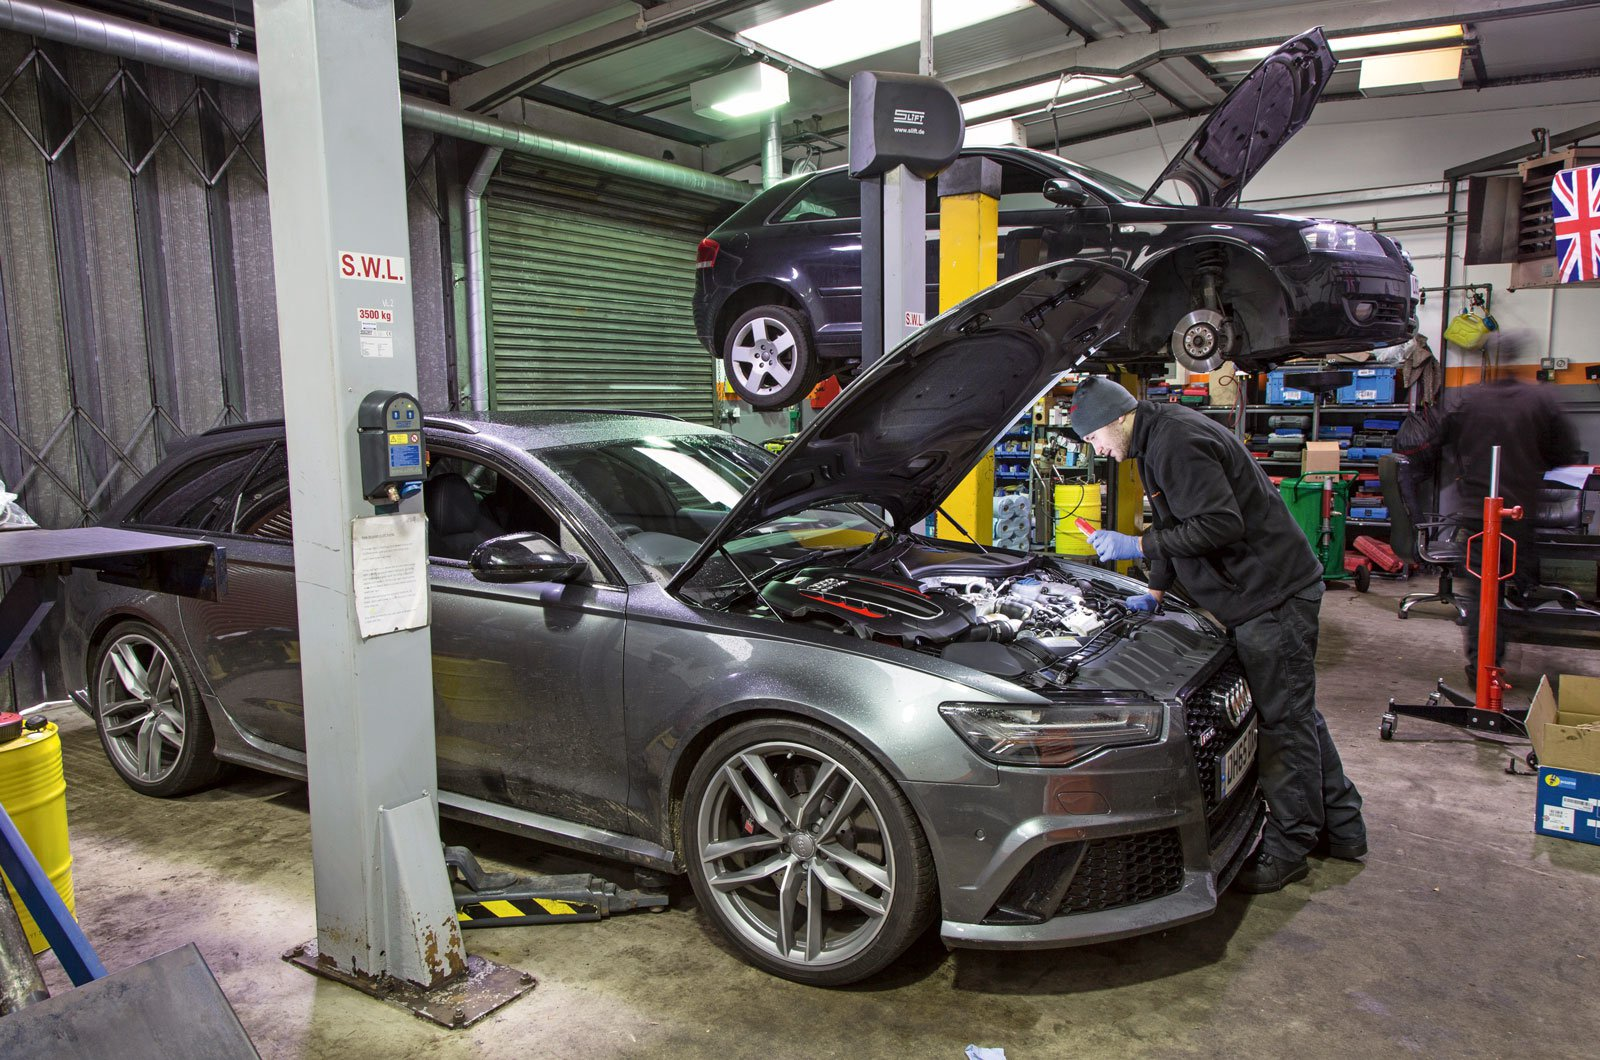 Car being serviced